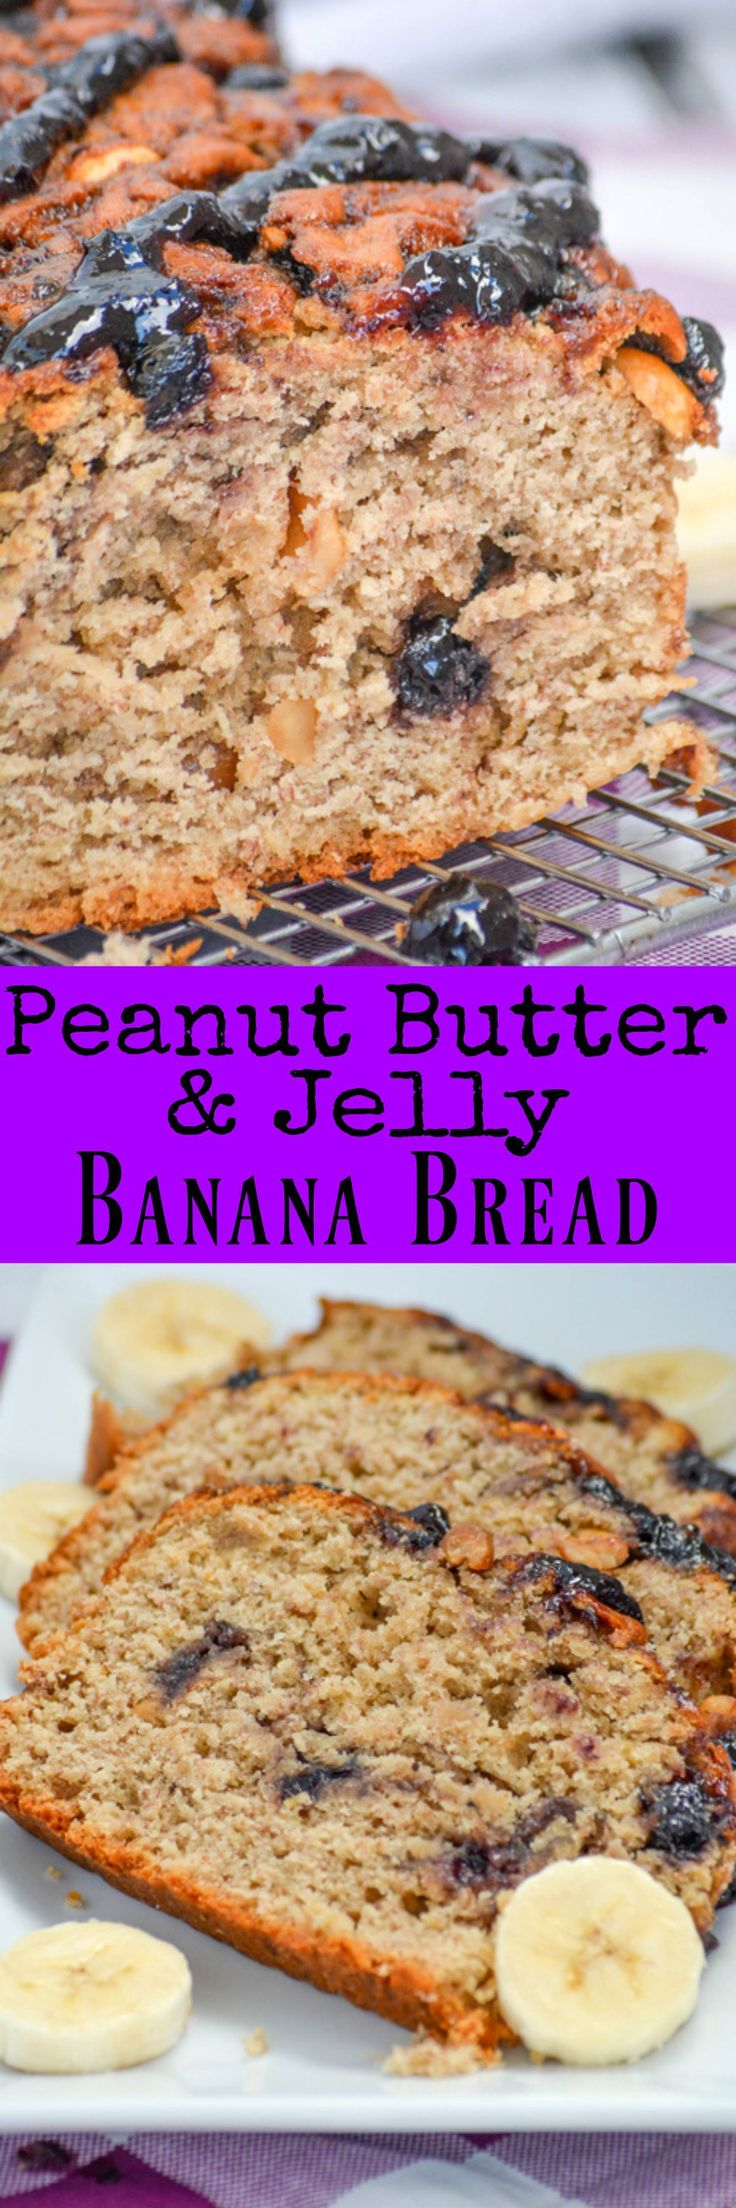 Is it breakfast? Dessert? A snack? This quick and easy Peanut Butter & Jelly Banana Bread is all of the above, and it's amazing. A peanut butter and banana flavored batter with a delicious jelly swirl, this loaf is studded with roasted peanuts and topped with a smooth jelly drizzle. It's a real treat for both kids and adults.